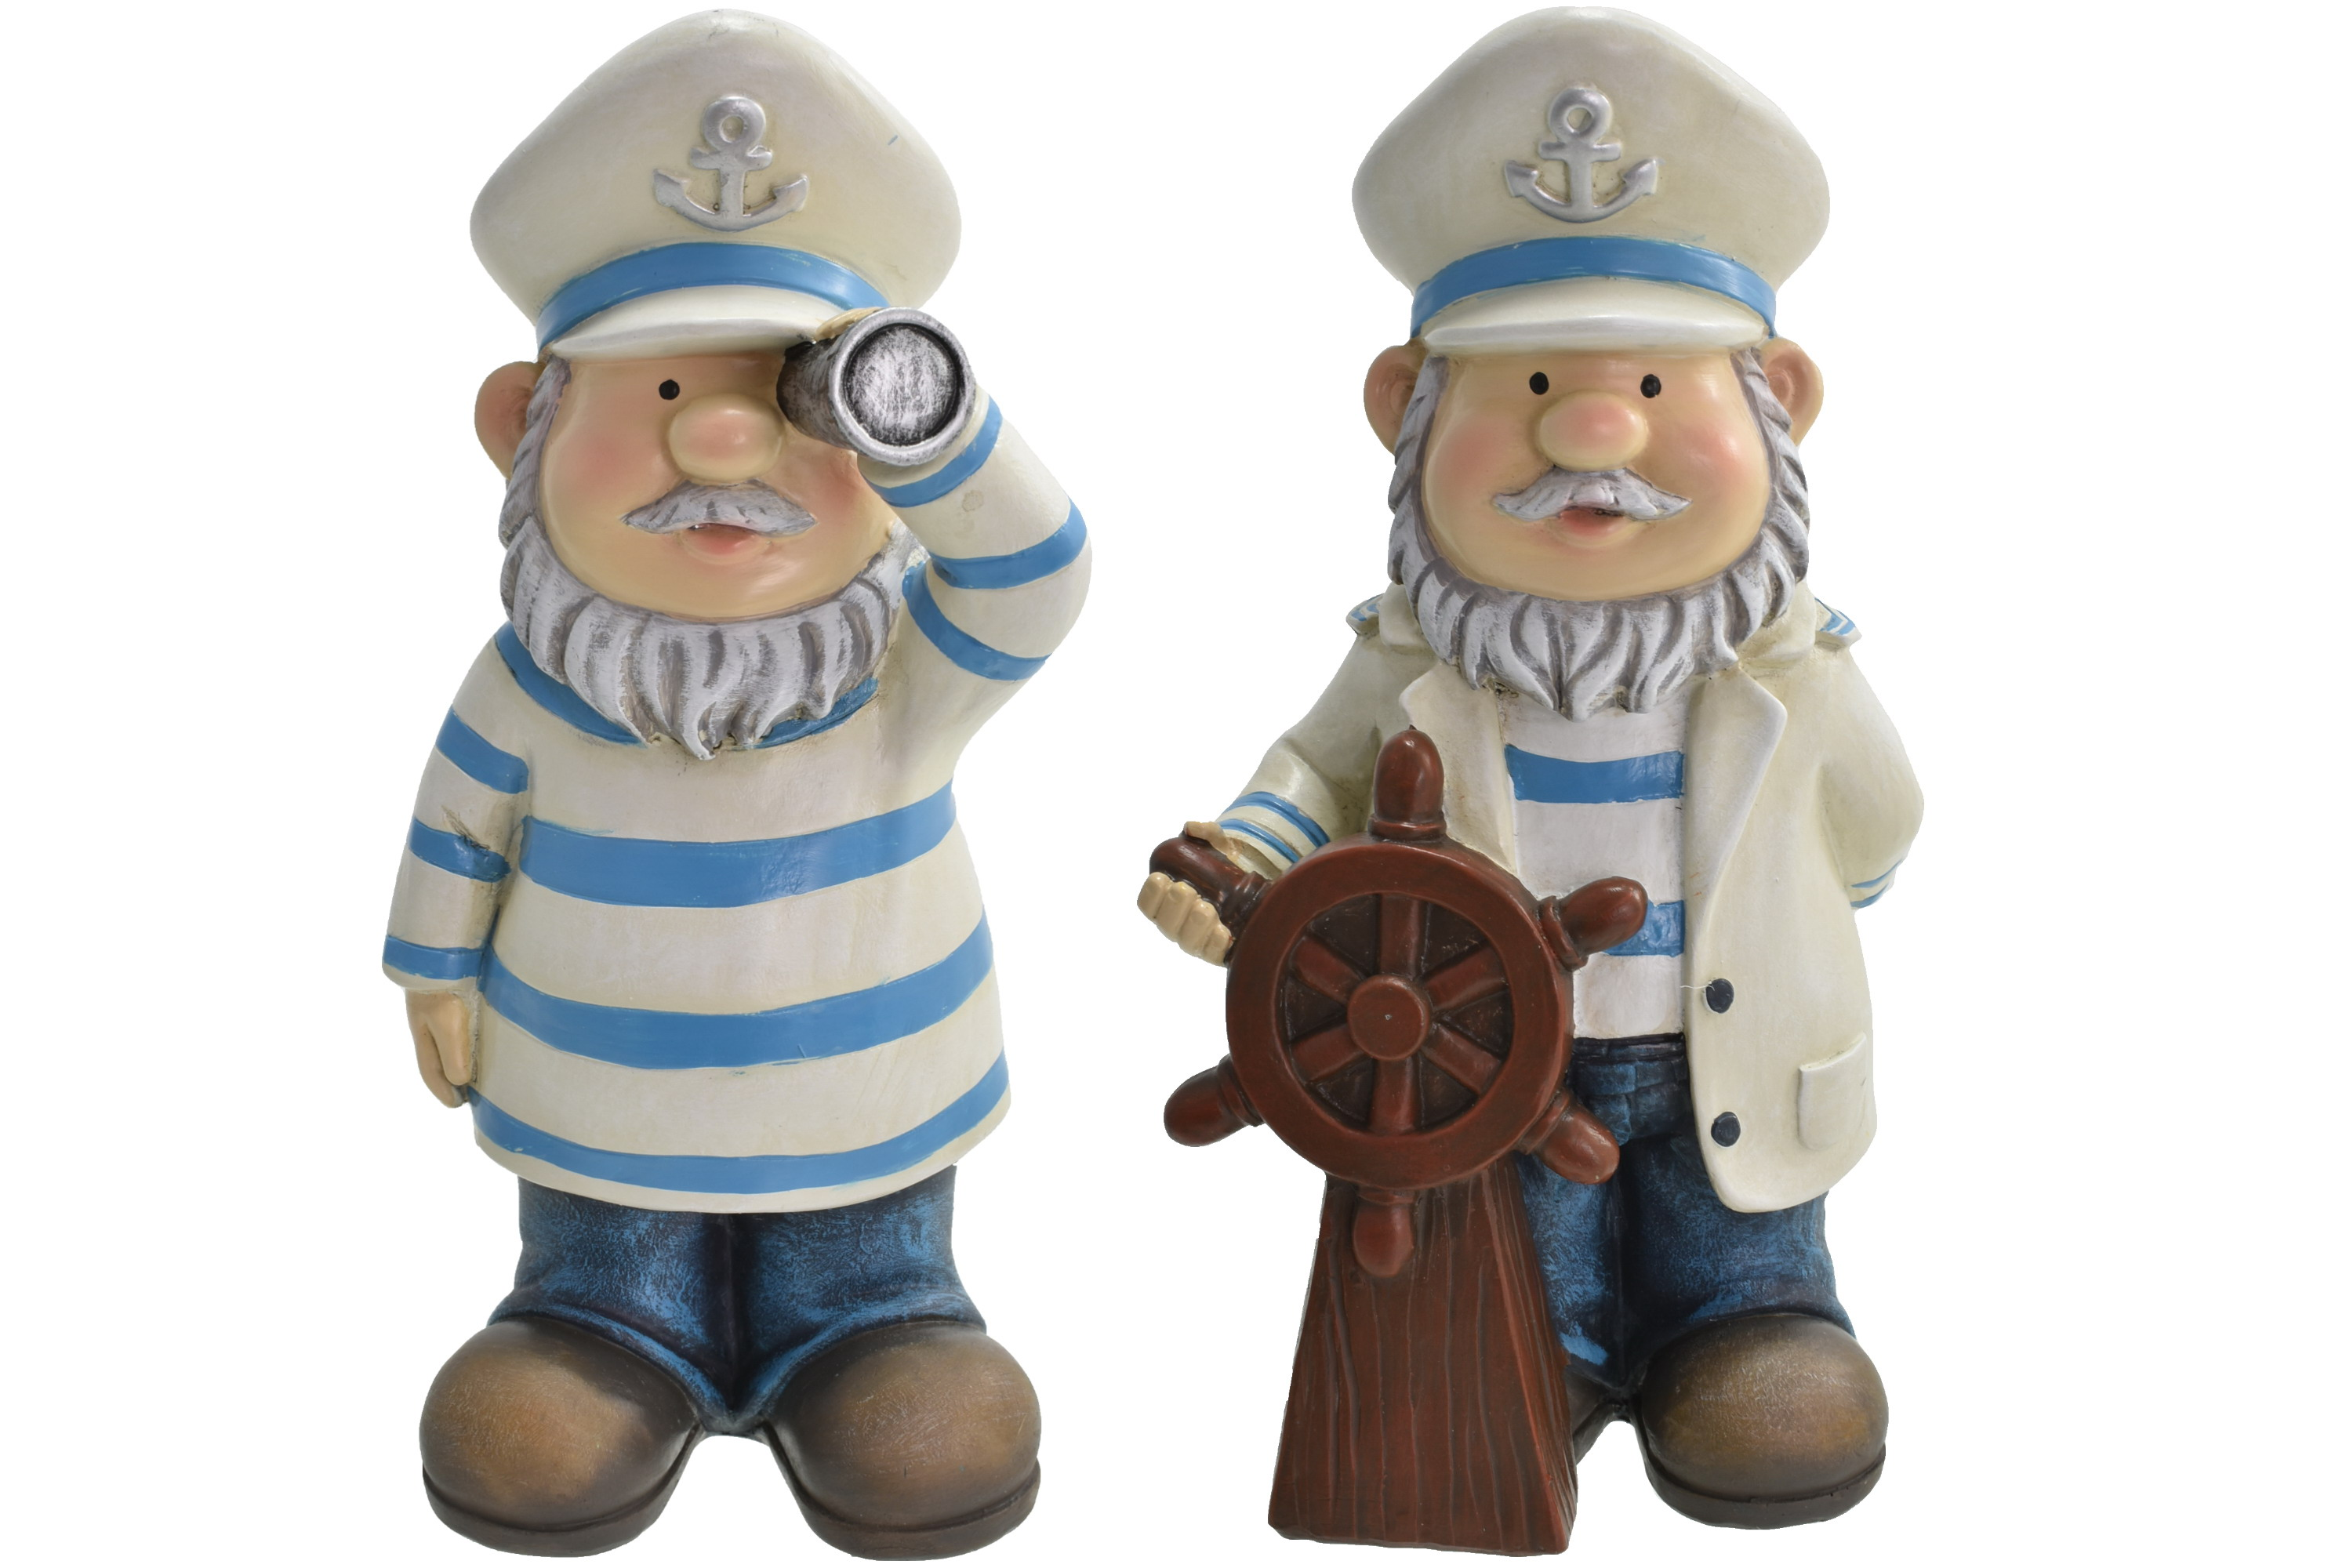 20cm Gnautical Captain Gnome 2 Assorted Designs